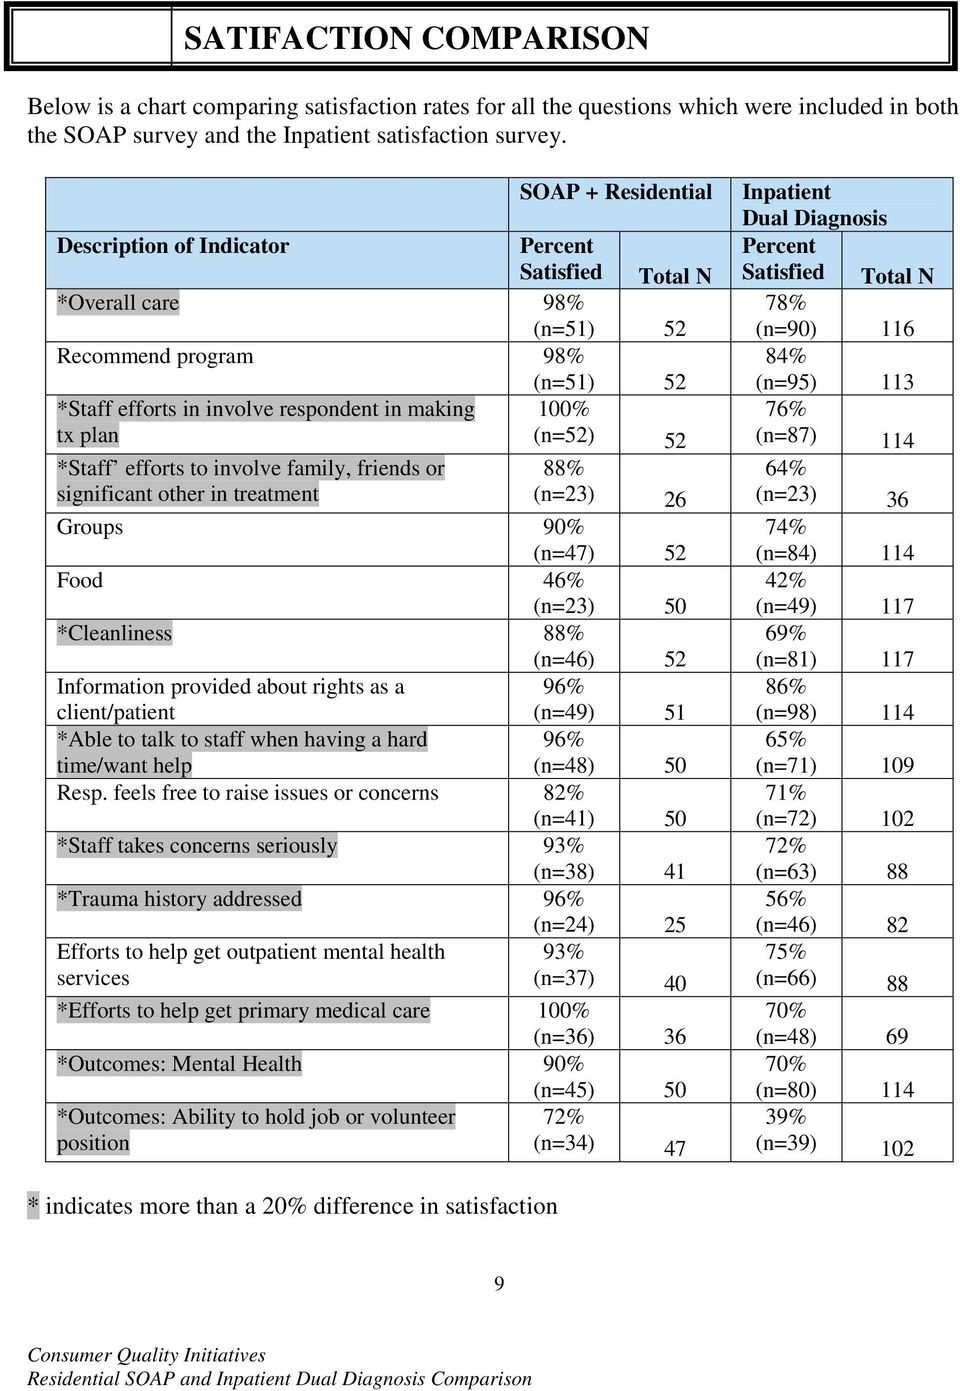 *Staff efforts to involve family, friends or significant other in treatment 88% (n=23) 26 Groups 90% (n=47) 52 Food 46% (n=23) 50 *Cleanliness 88% (n=46) 52 Information provided about rights as a 96%